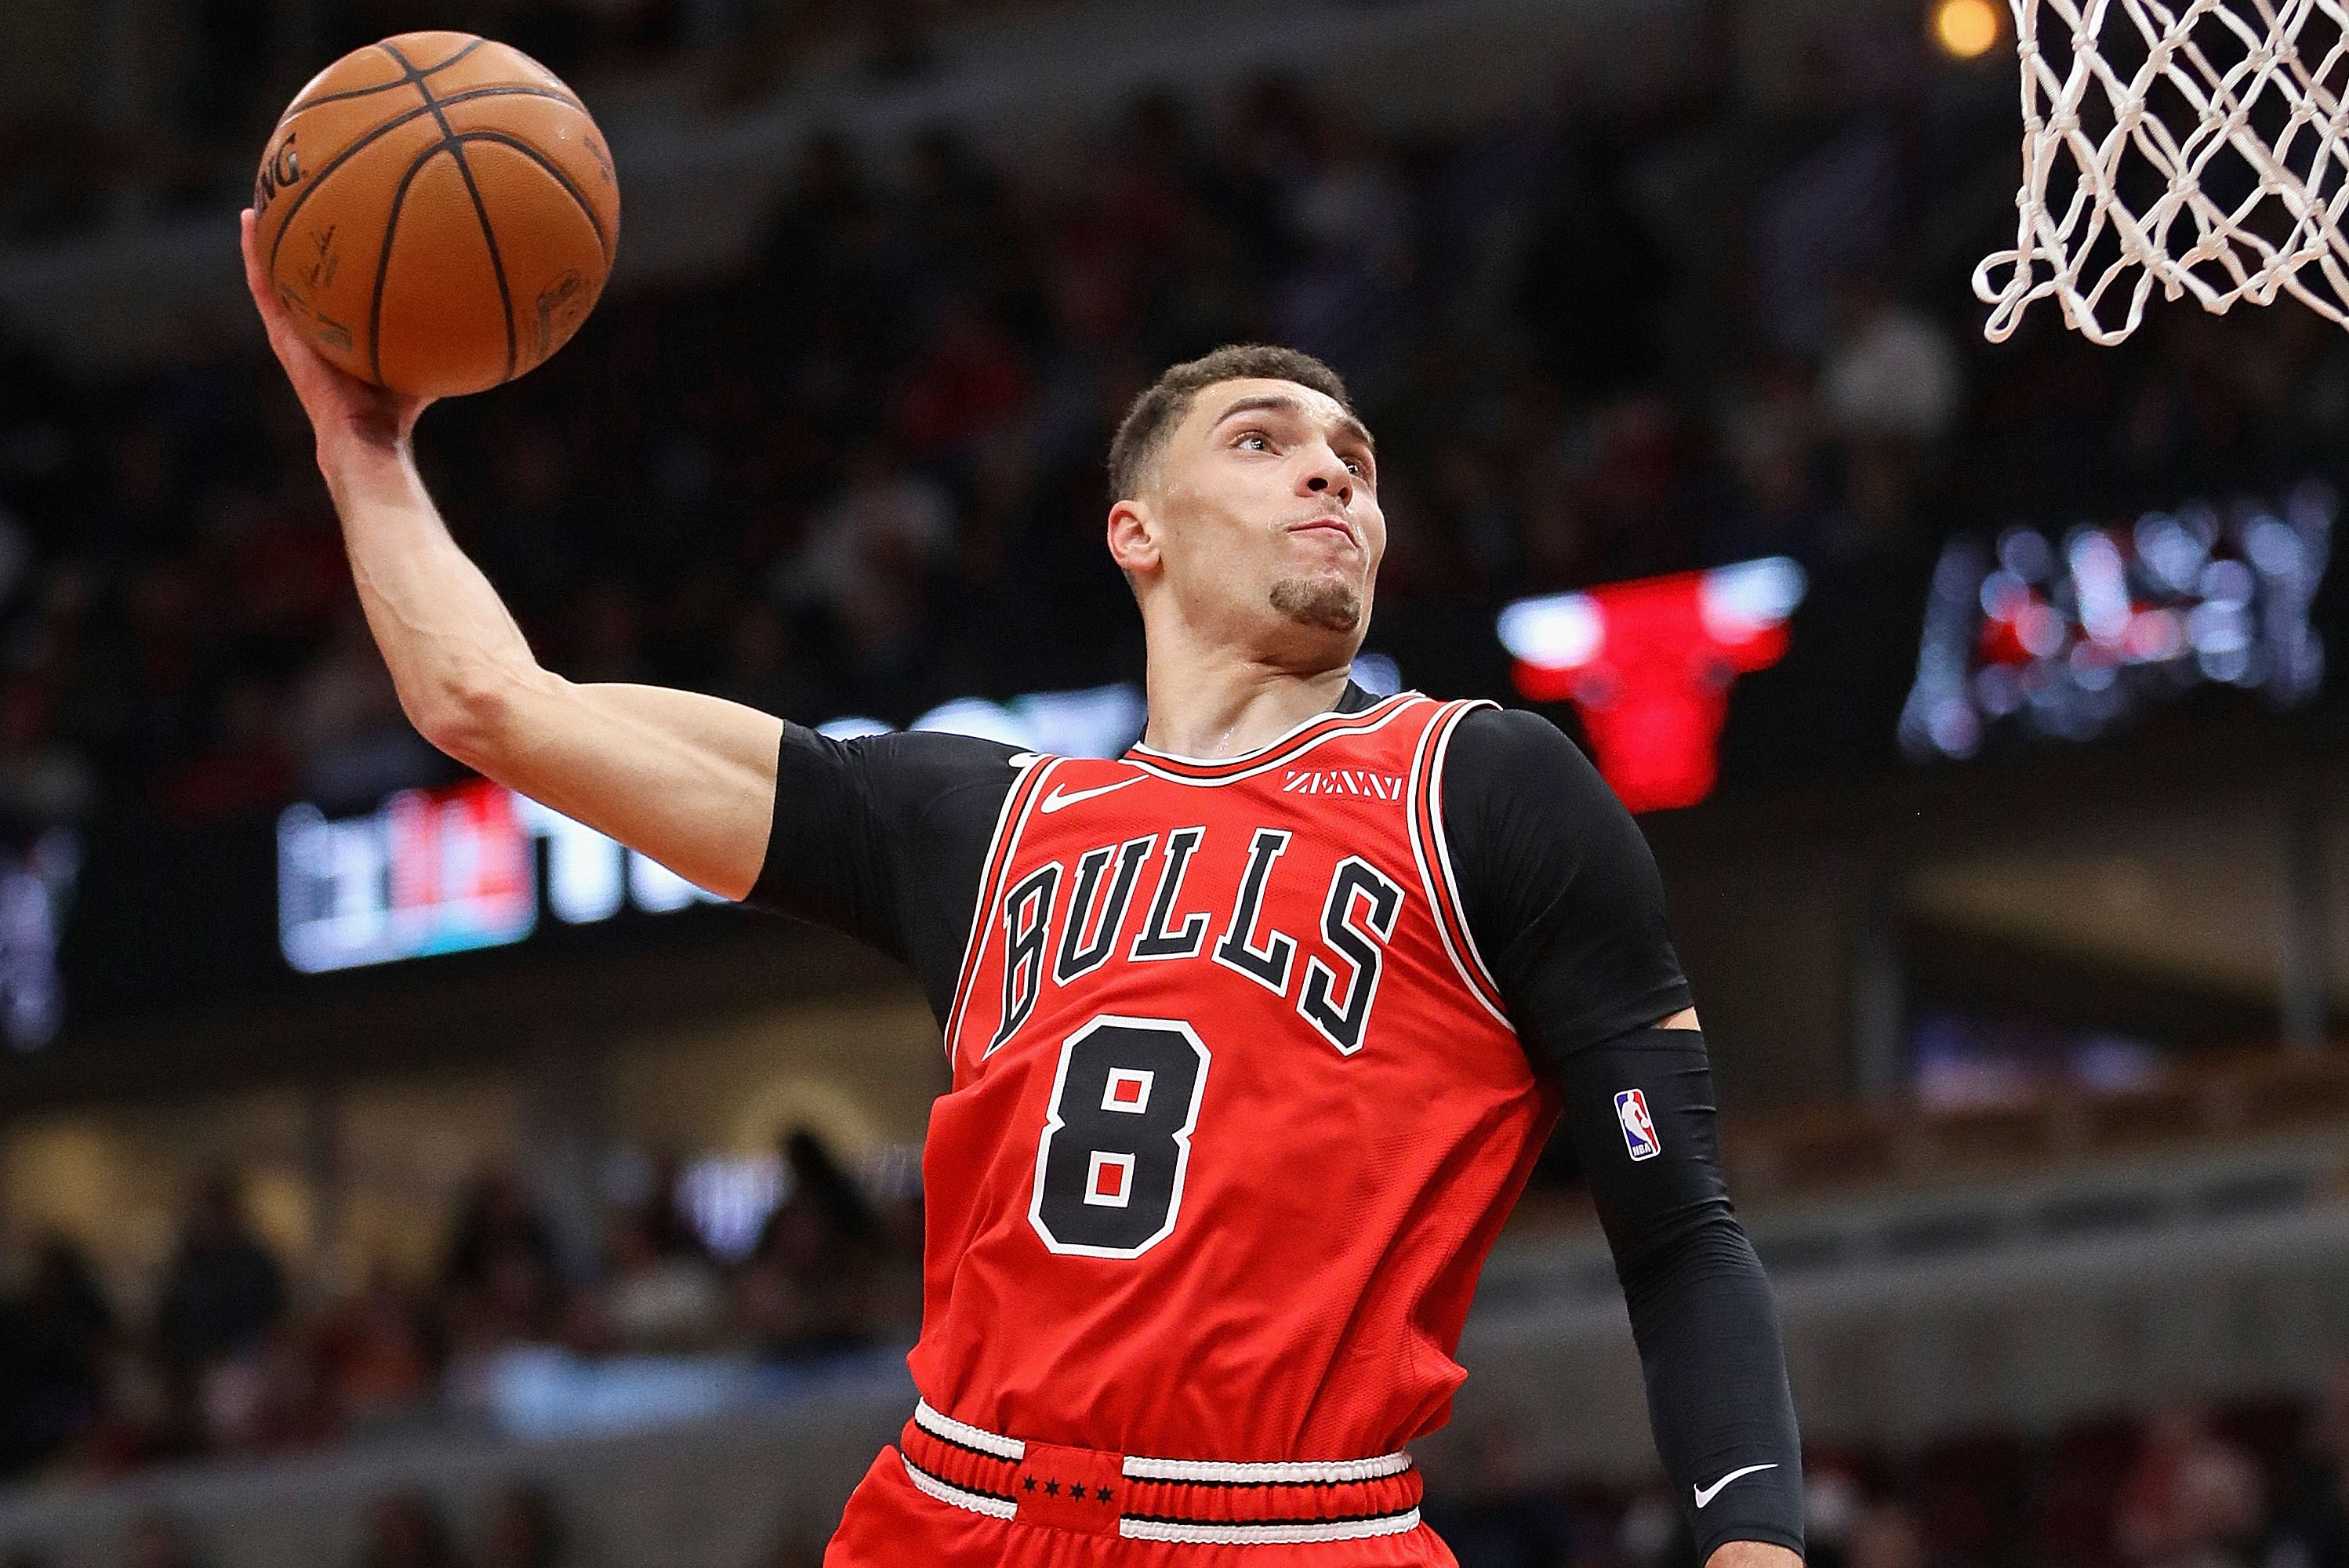 """""""I understand the business of basketball, but at the end of the day, anybody can get traded on any team and anybody can go anywhere just like injuries can happen to everybody,'' the Bulls' Zach LaVine said of trade rumors."""